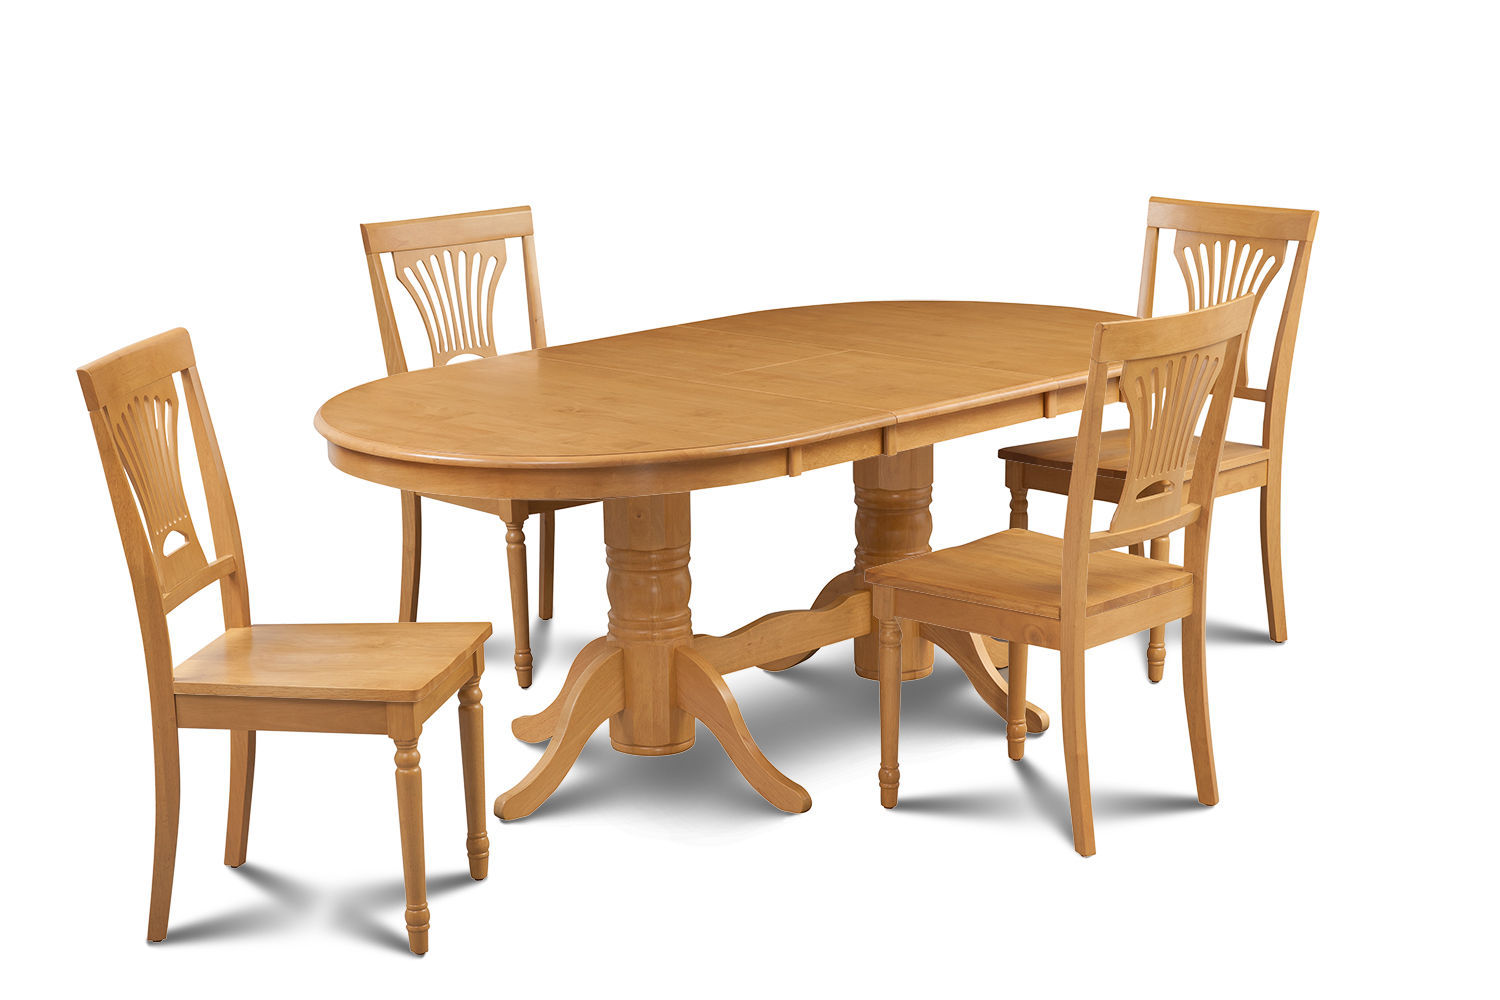 5 PIECE OVAL DINING ROOM TABLE SET w/ 4 WOODEN CHAIRS IN OAK FINISH